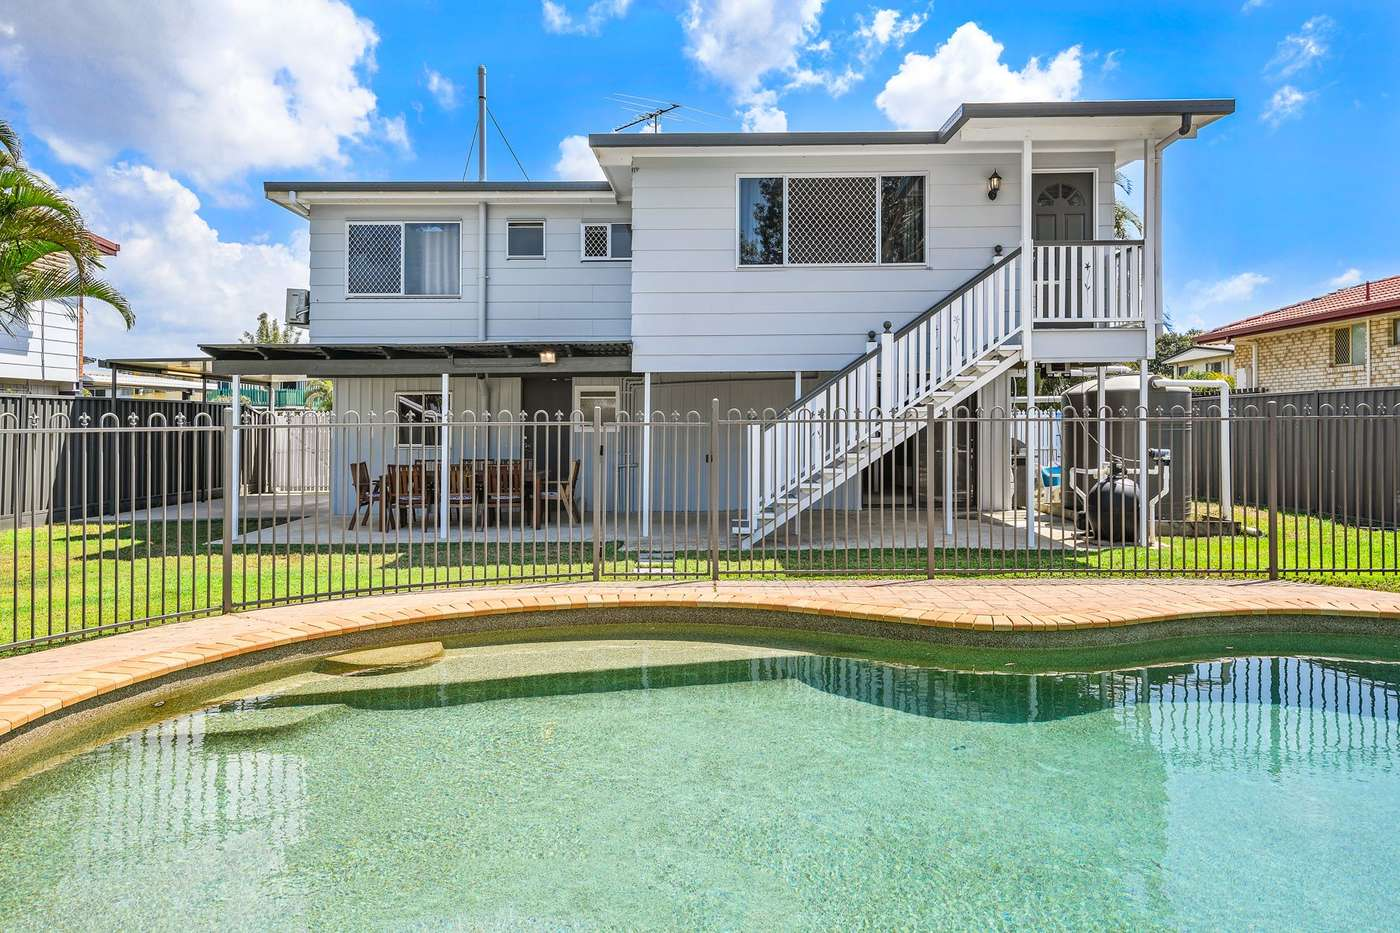 Main view of Homely house listing, 32 Samrill Street, Boondall, QLD 4034